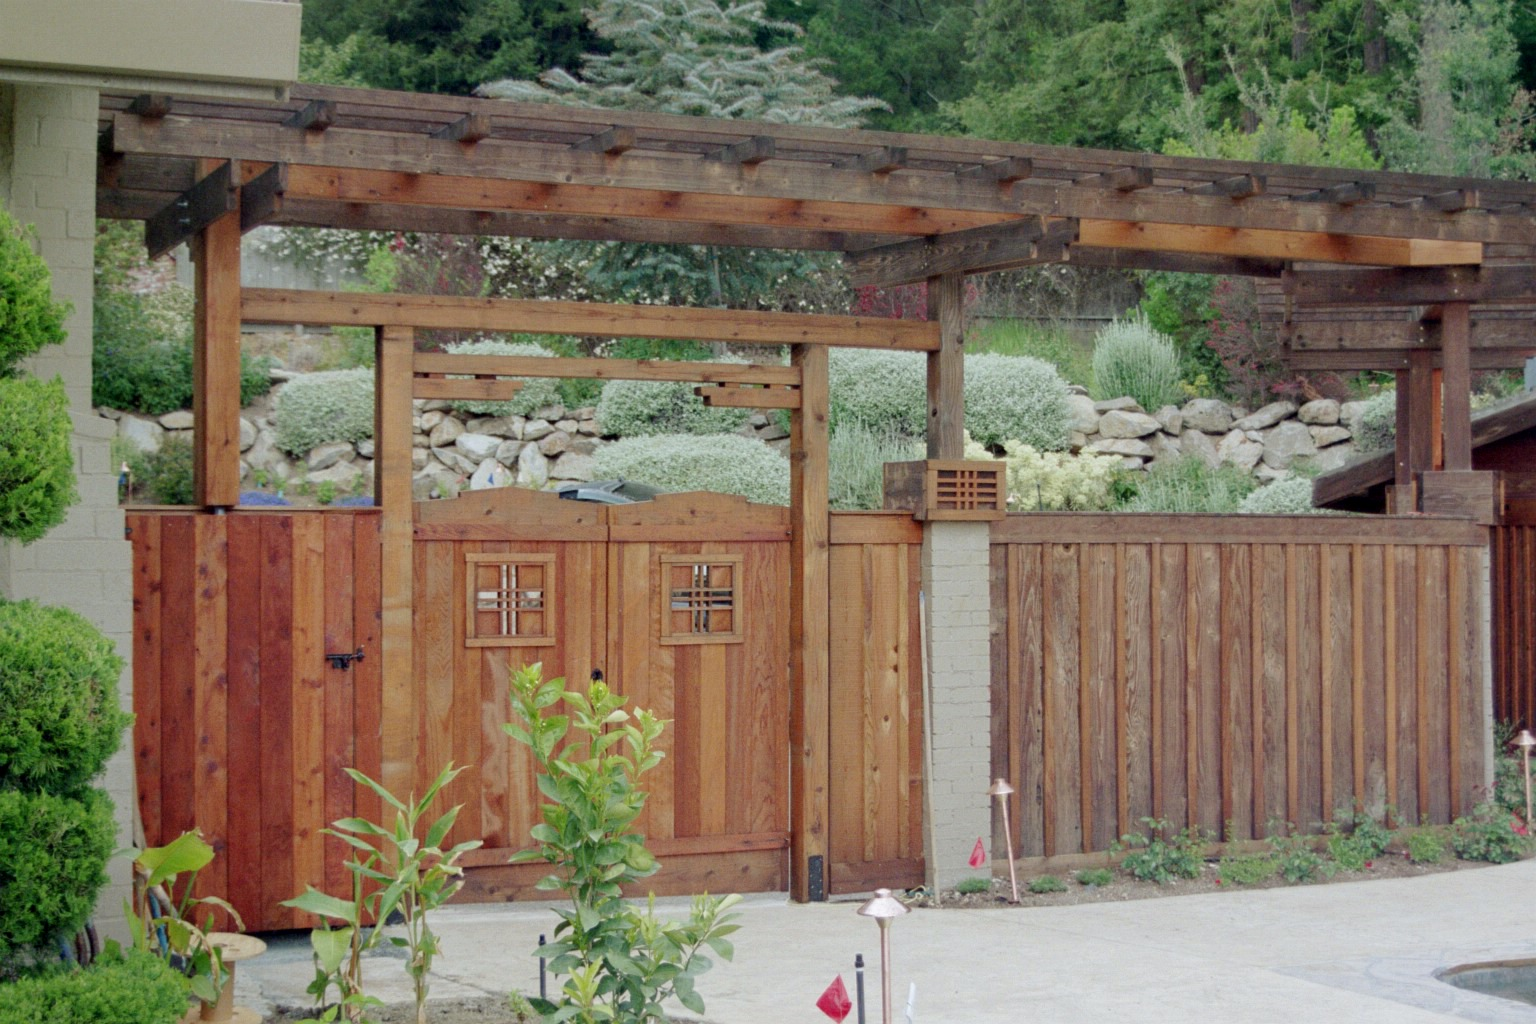 Tile gate and fence for Japanese gates pictures